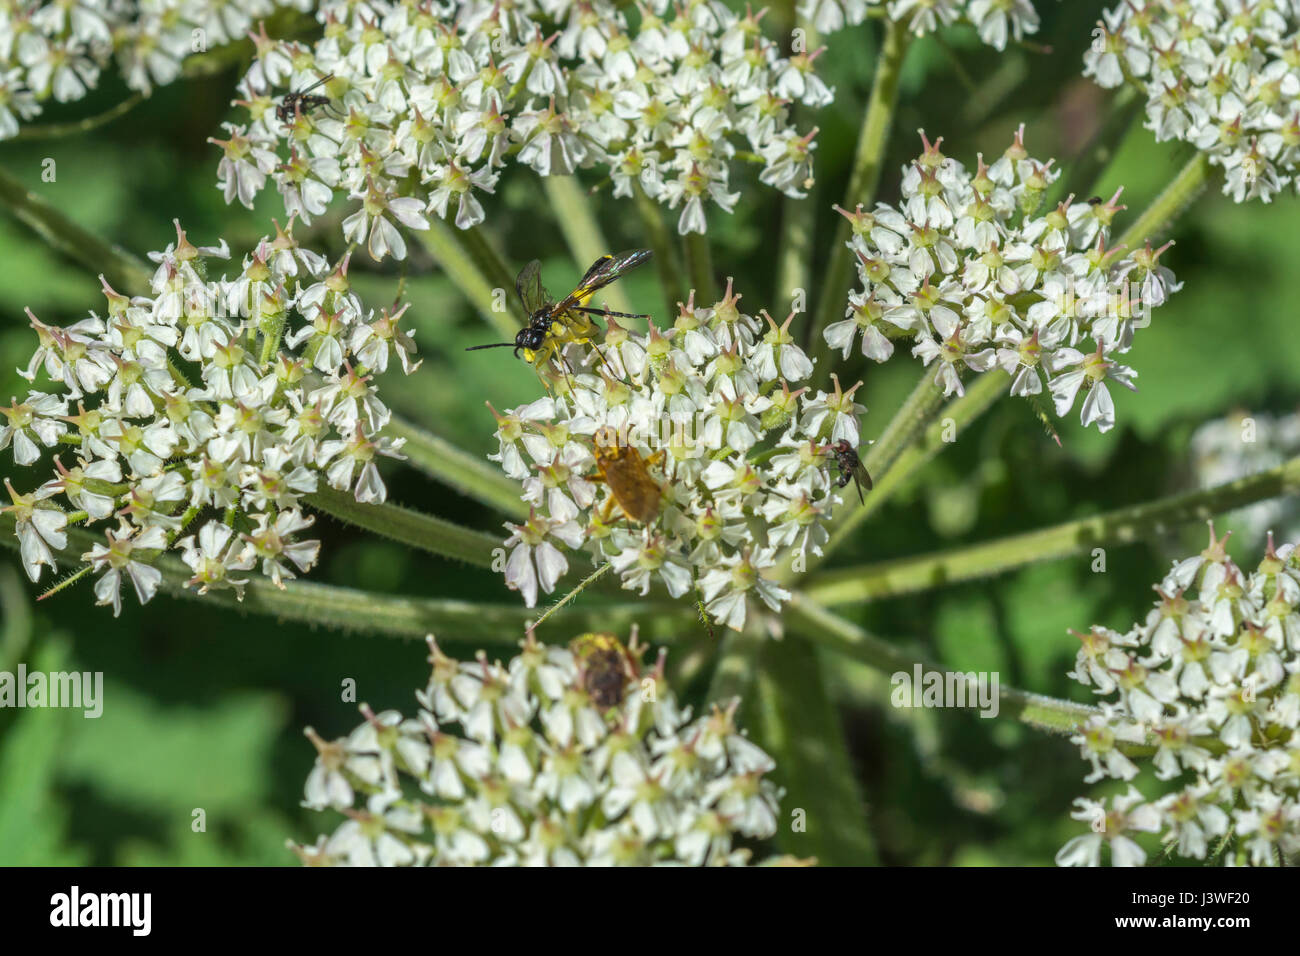 Hogweed flower cluster with Yellow Dung Fly (Scathophaga sterconia) feeding on nectar + a wasp-like fly. - Stock Image